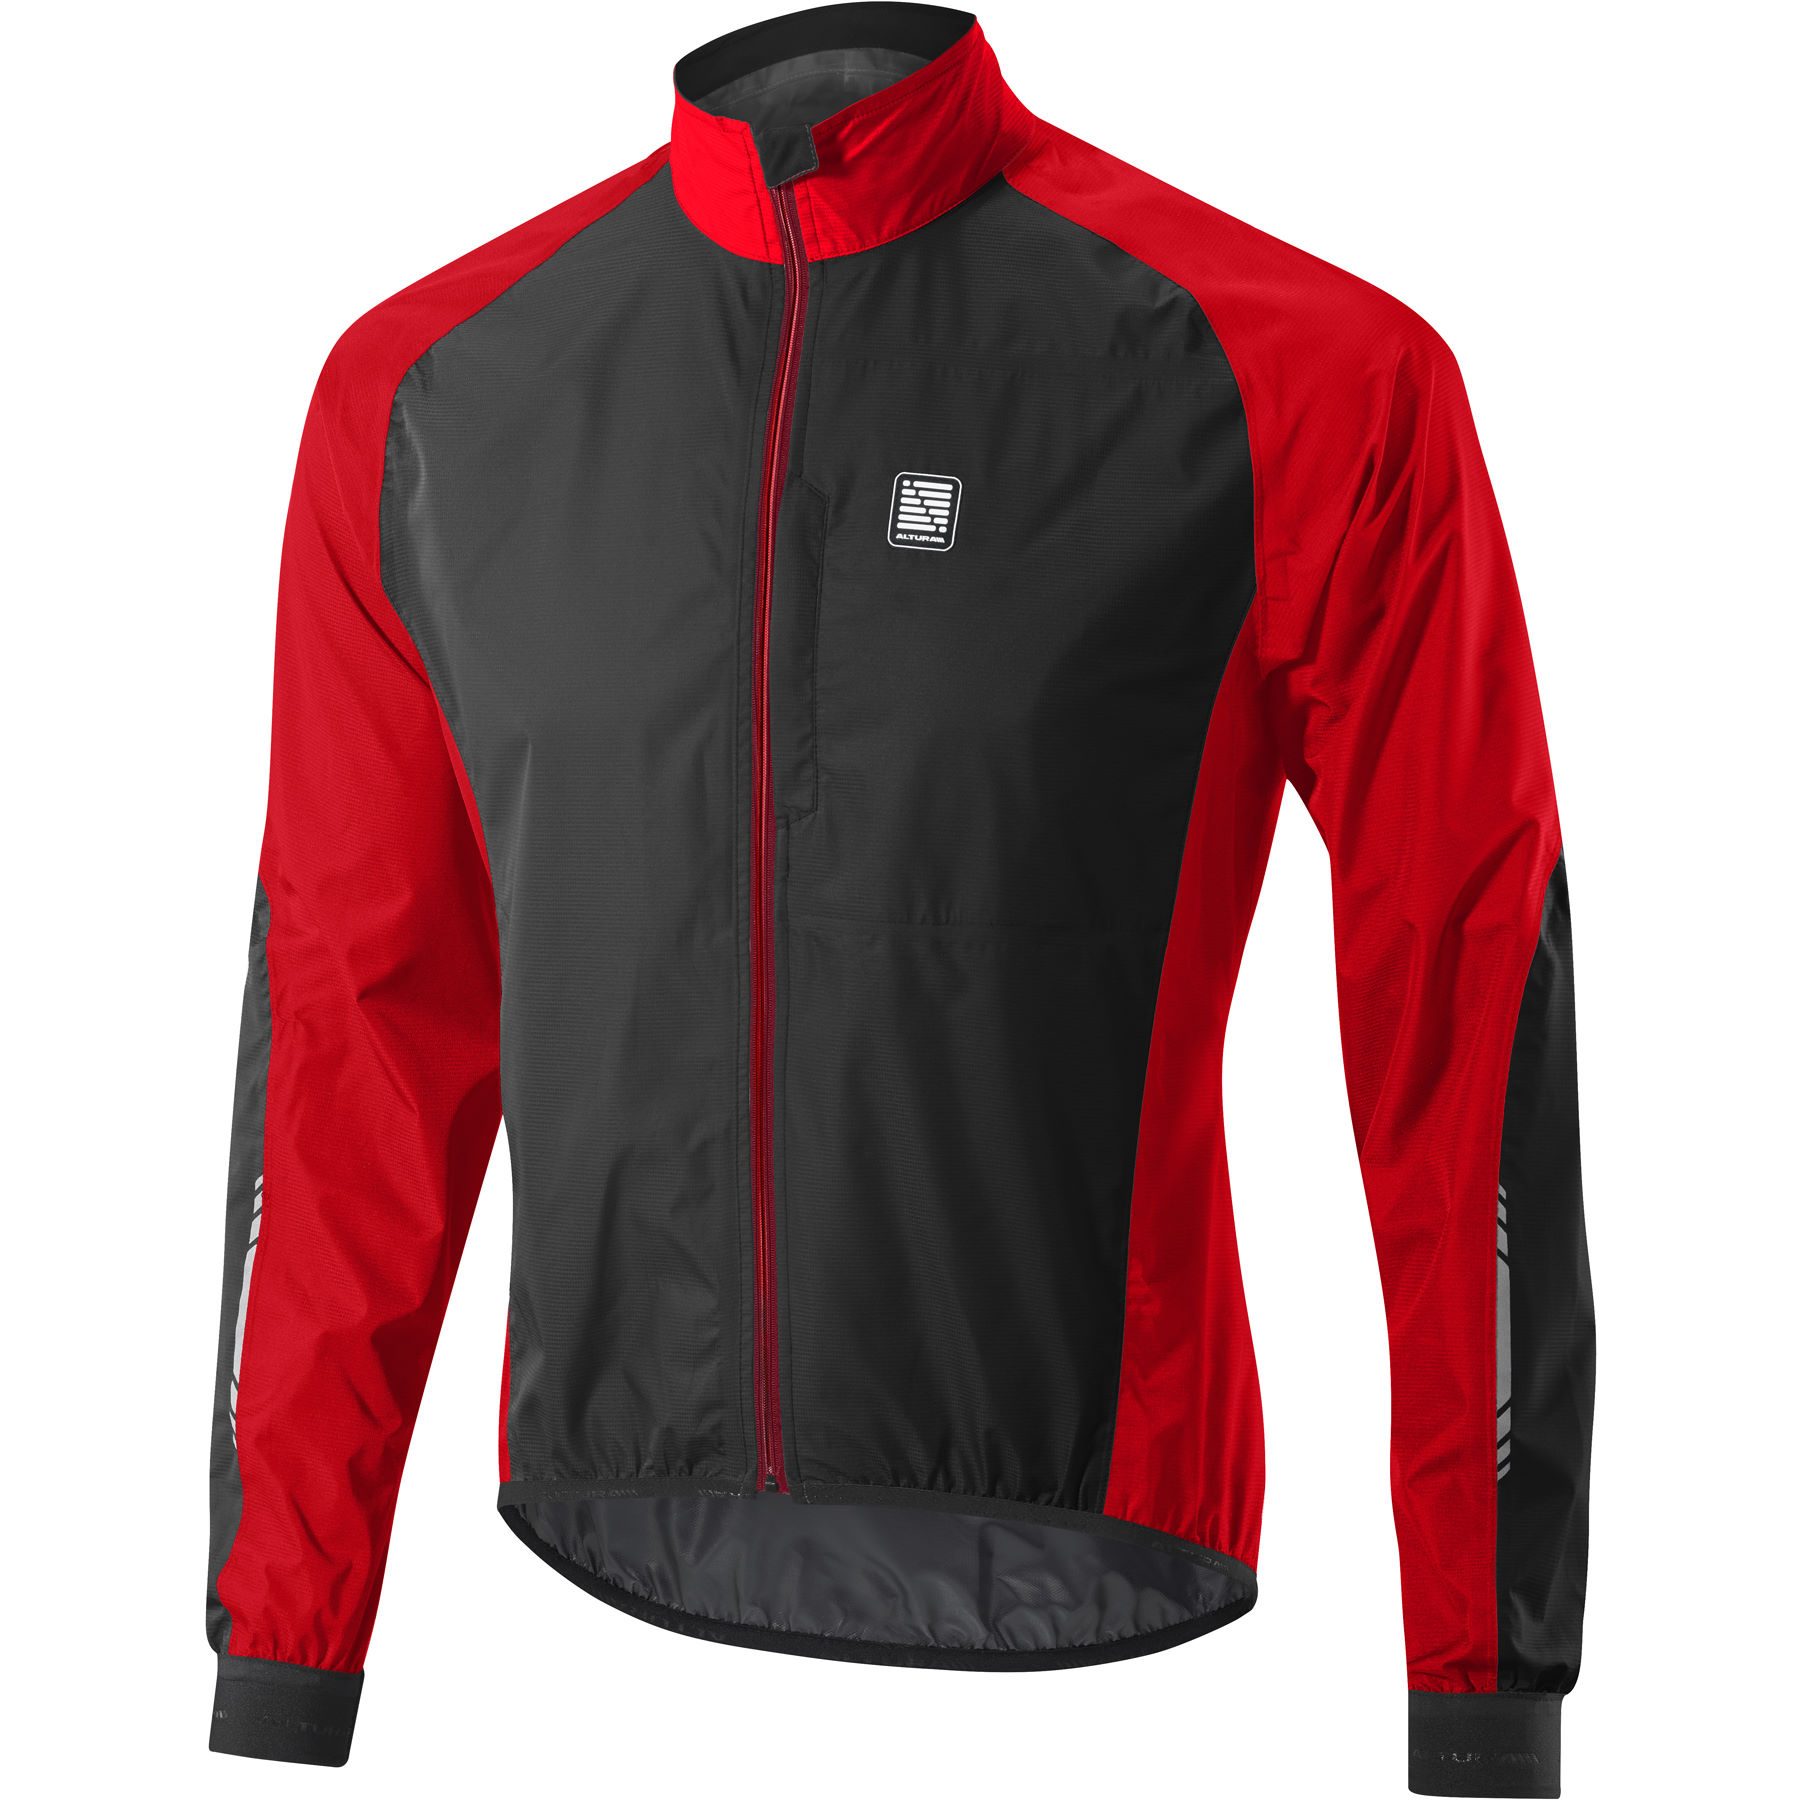 wiggle.com | Altura Peloton Waterproof Jacket | Cycling Waterproof